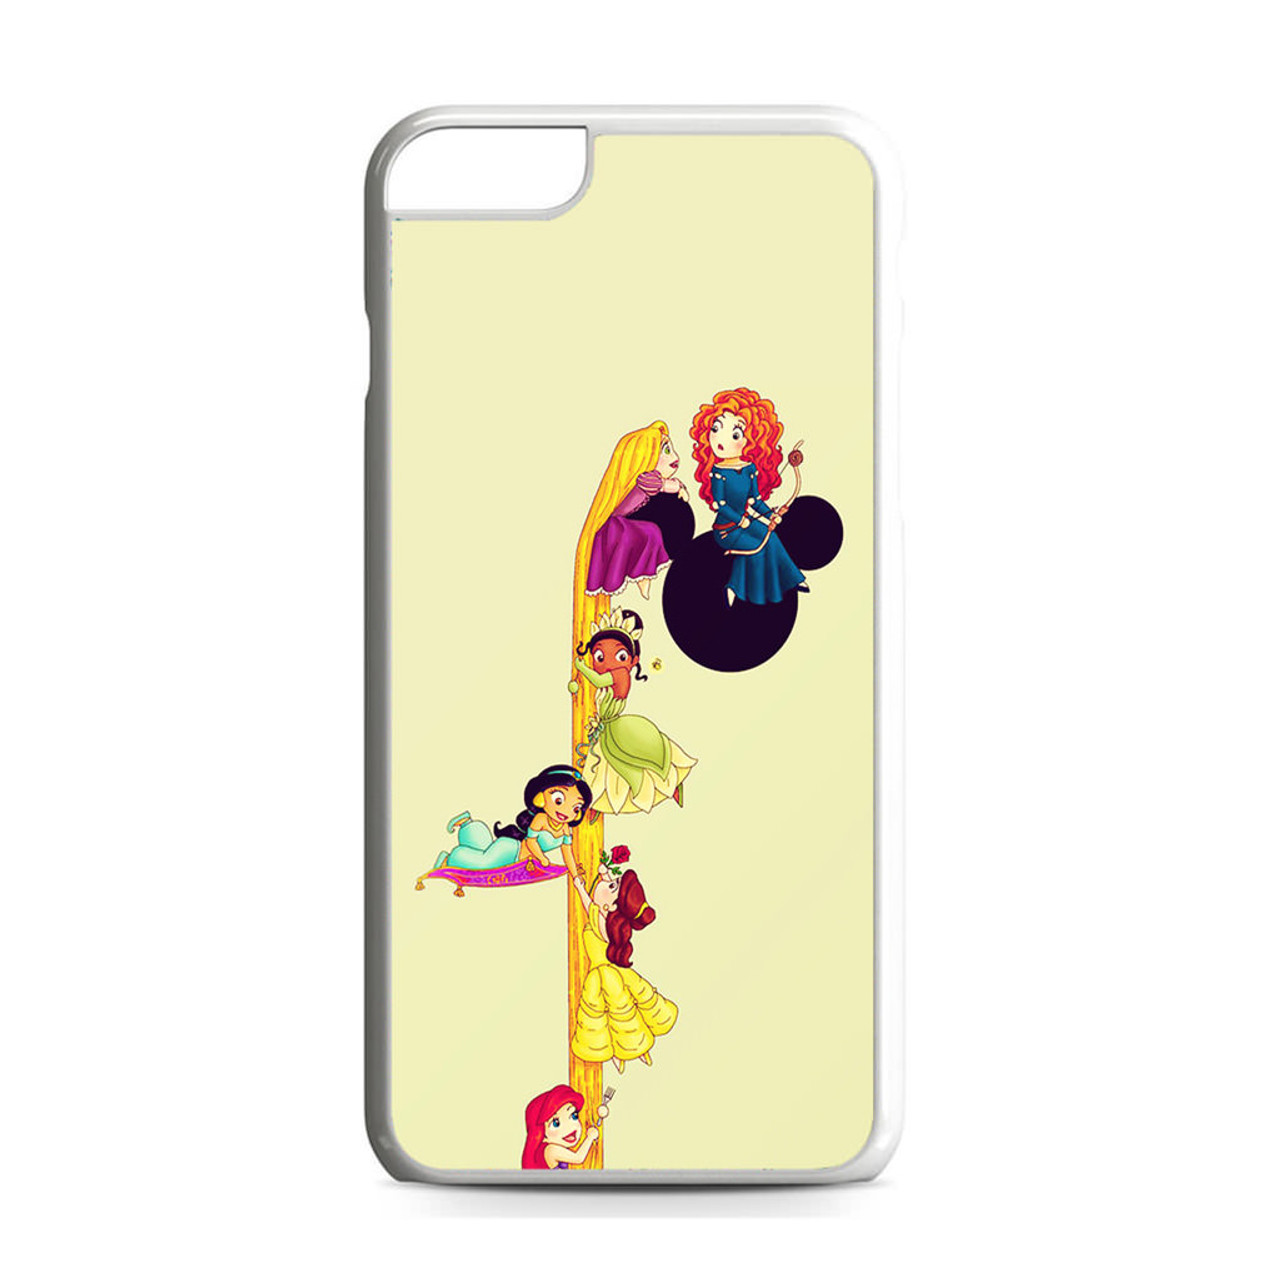 DISNEY PRINCESS iPhone 6 / 6S Plus